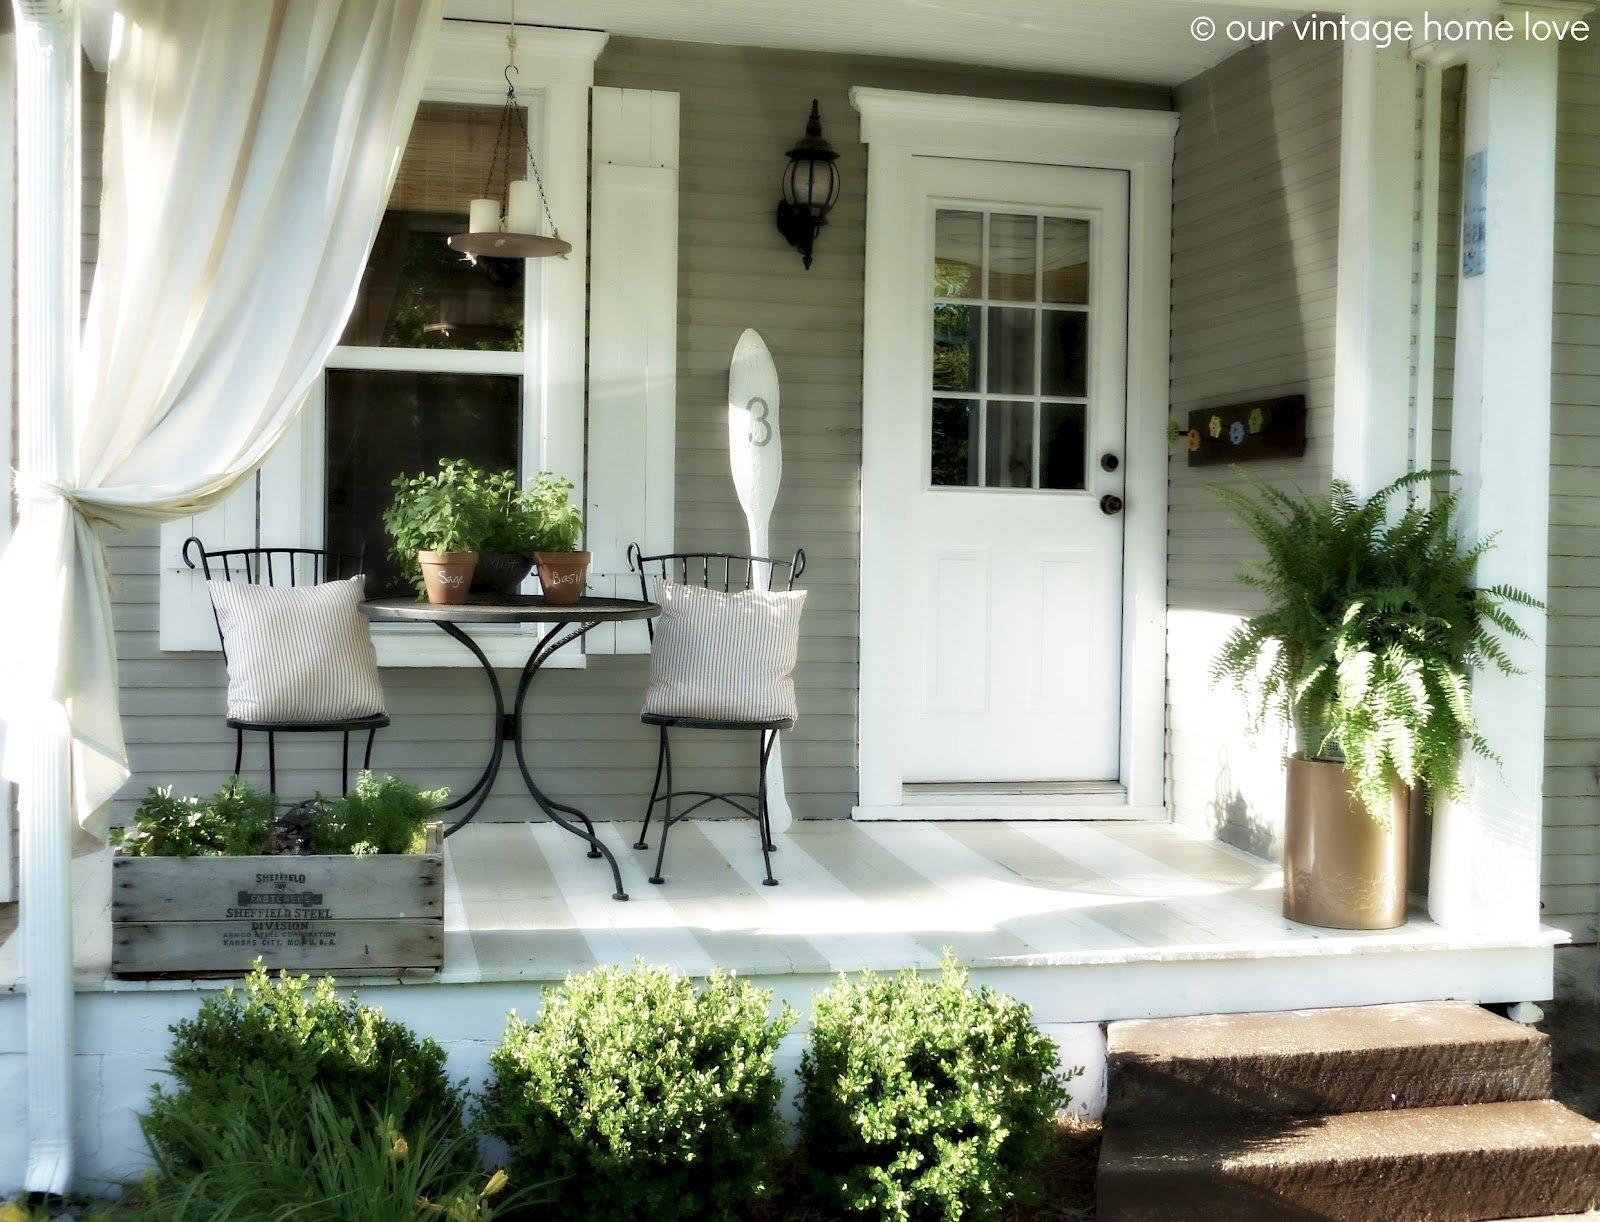 10 Ideal Front Porch Decorating Ideas For Spring back porch ideas that will add value appeal to your home side small 2021